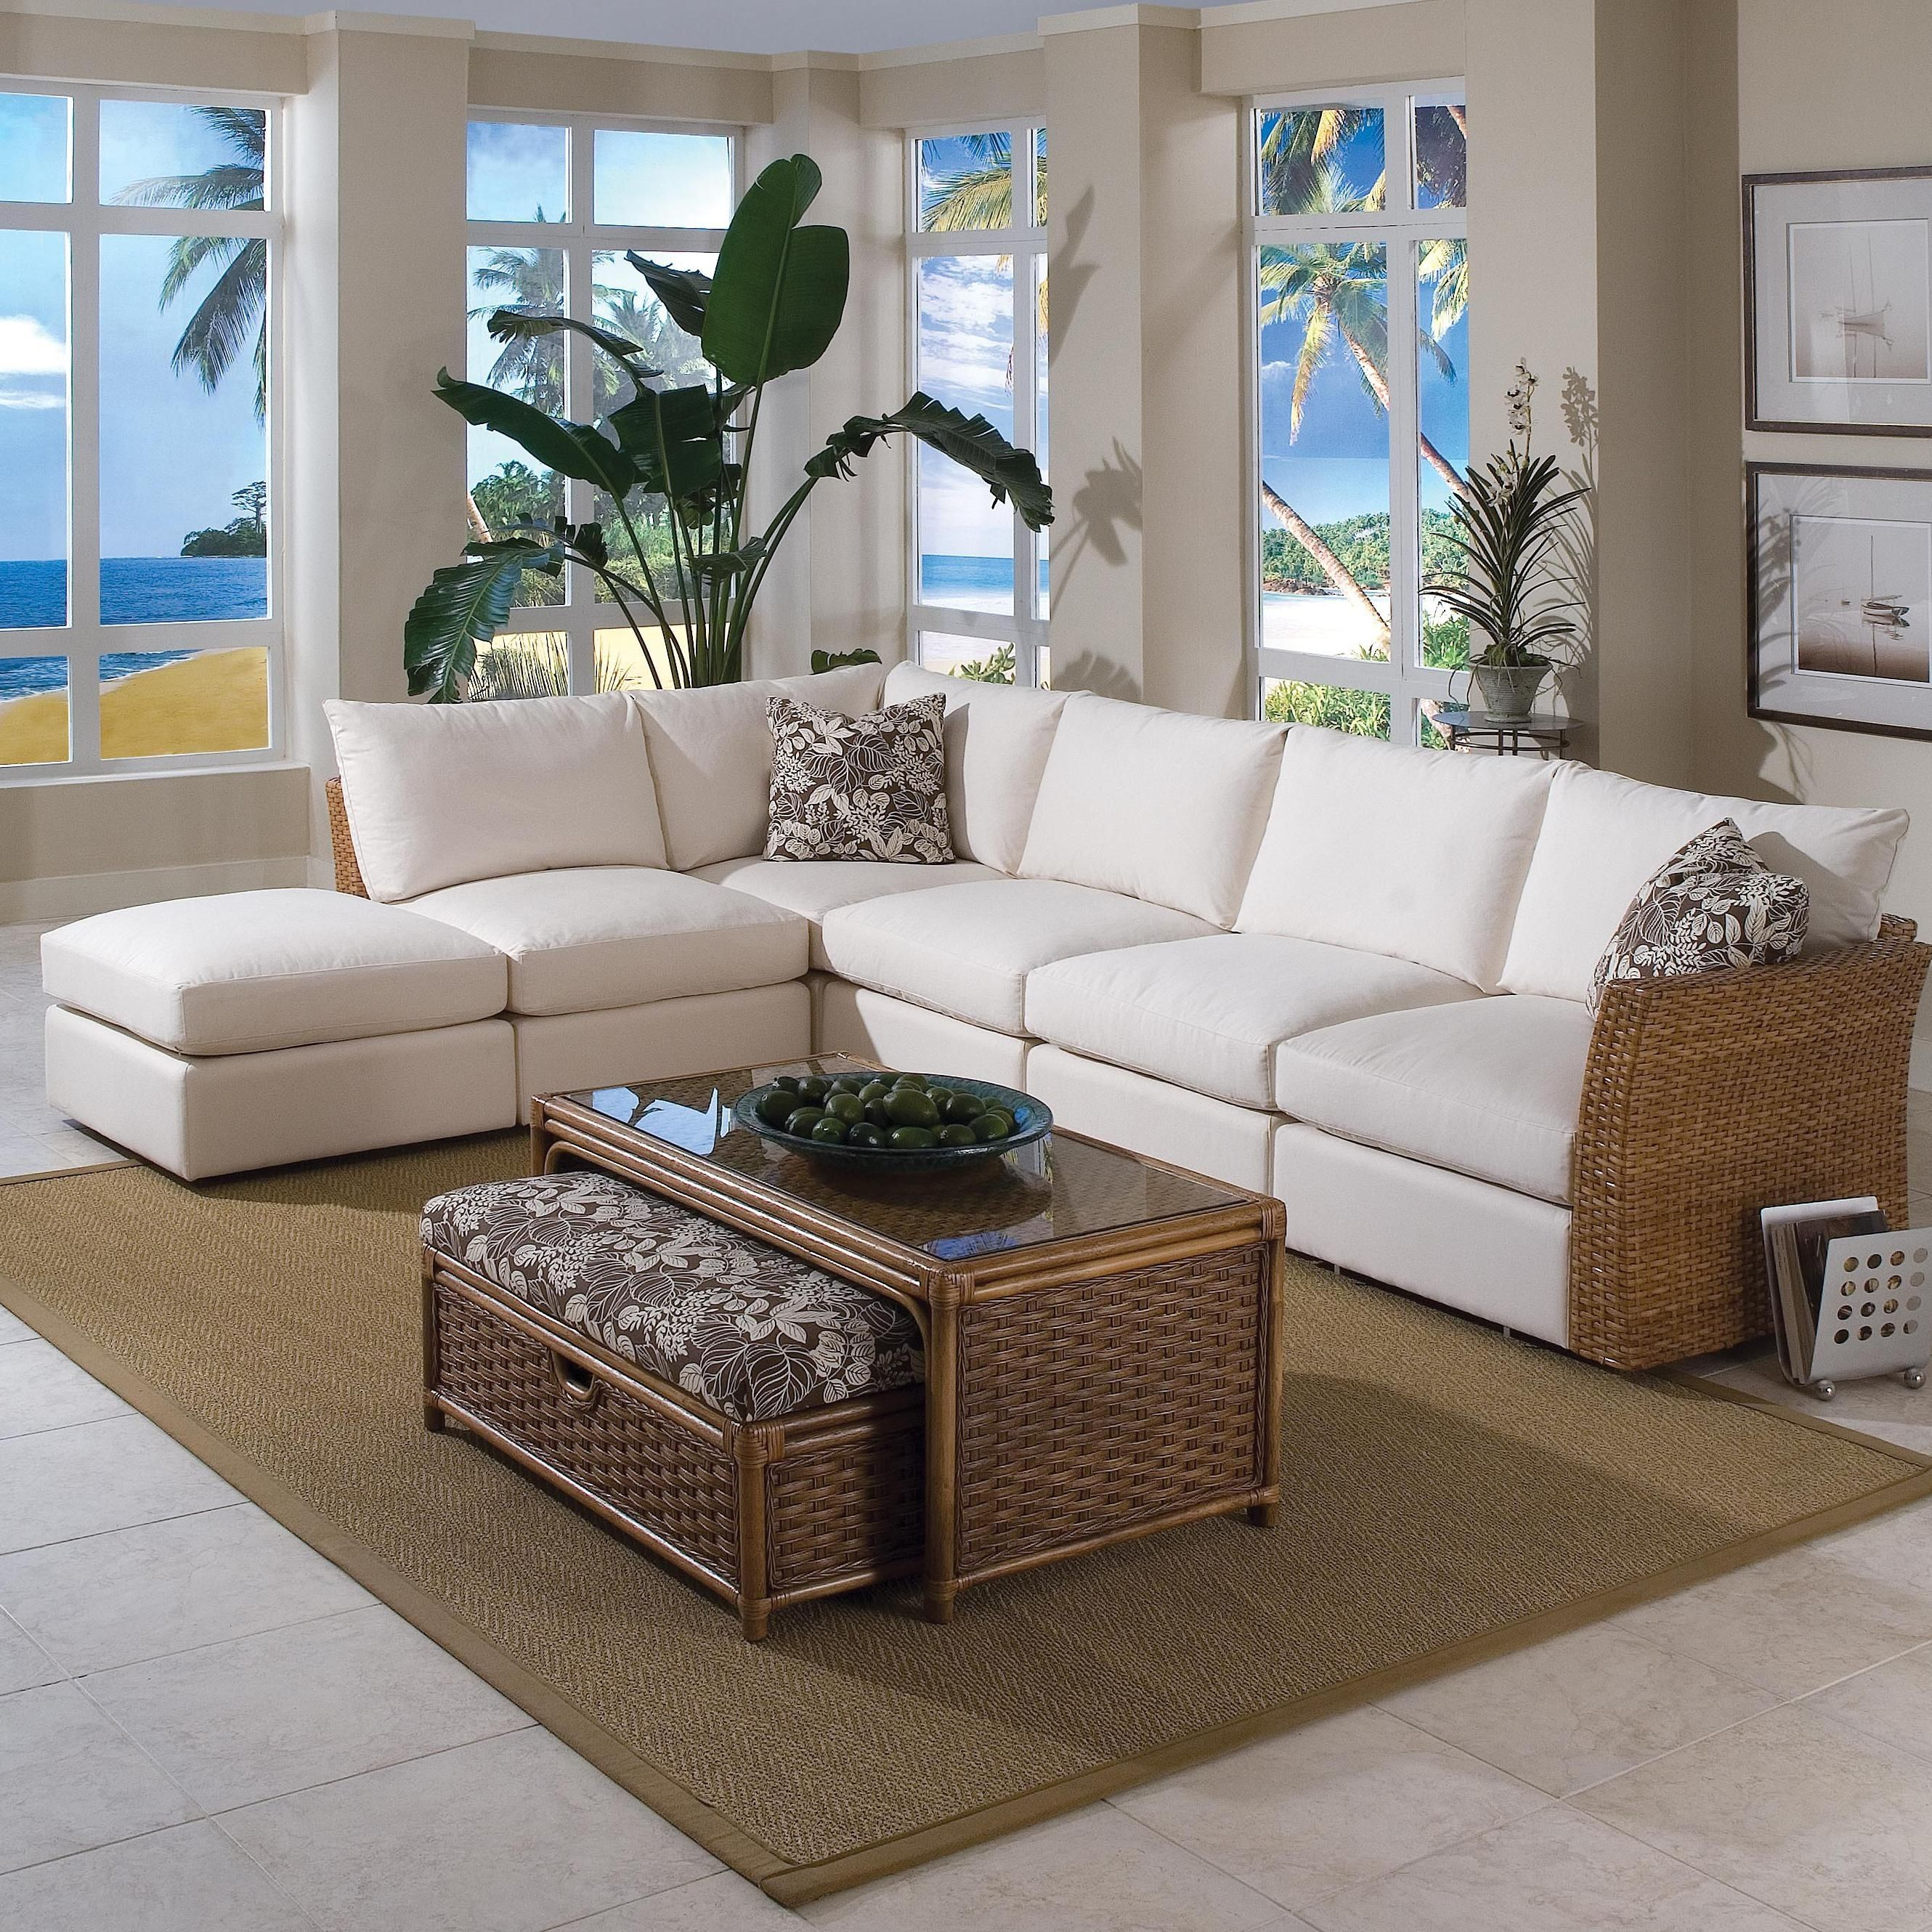 Sectional Sofas In Greenville Sc Https Tany P